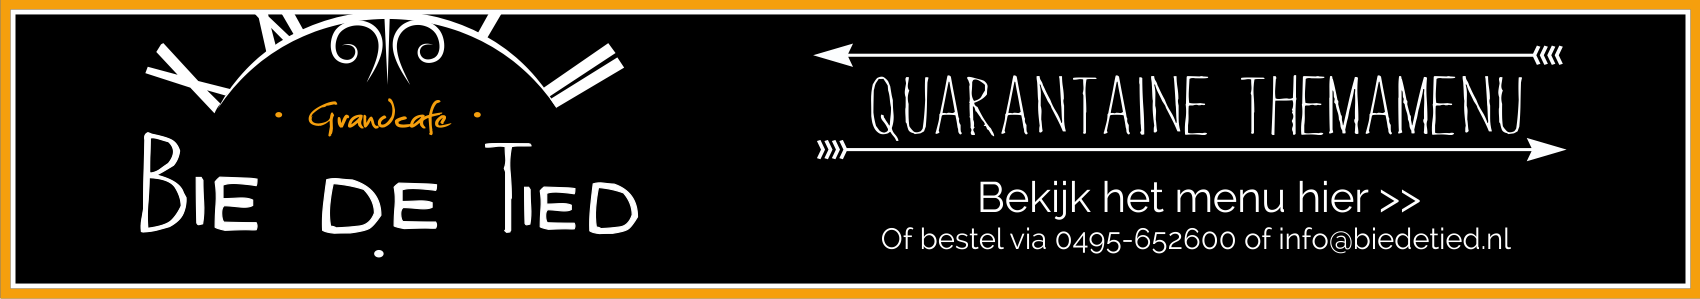 Quarantaine menu website1